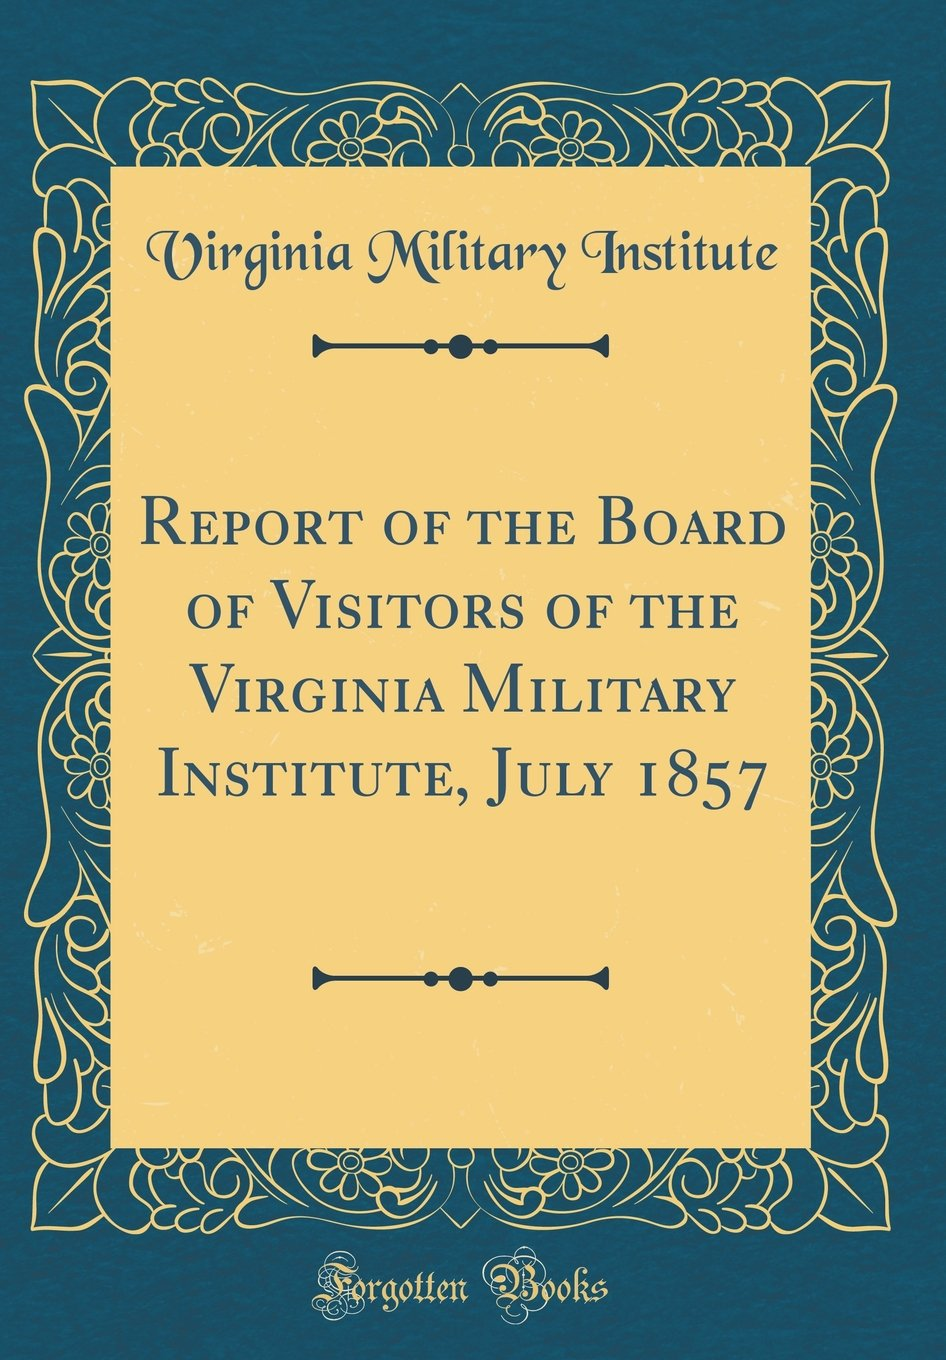 Download Report of the Board of Visitors of the Virginia Military Institute, July 1857 (Classic Reprint) PDF Text fb2 ebook